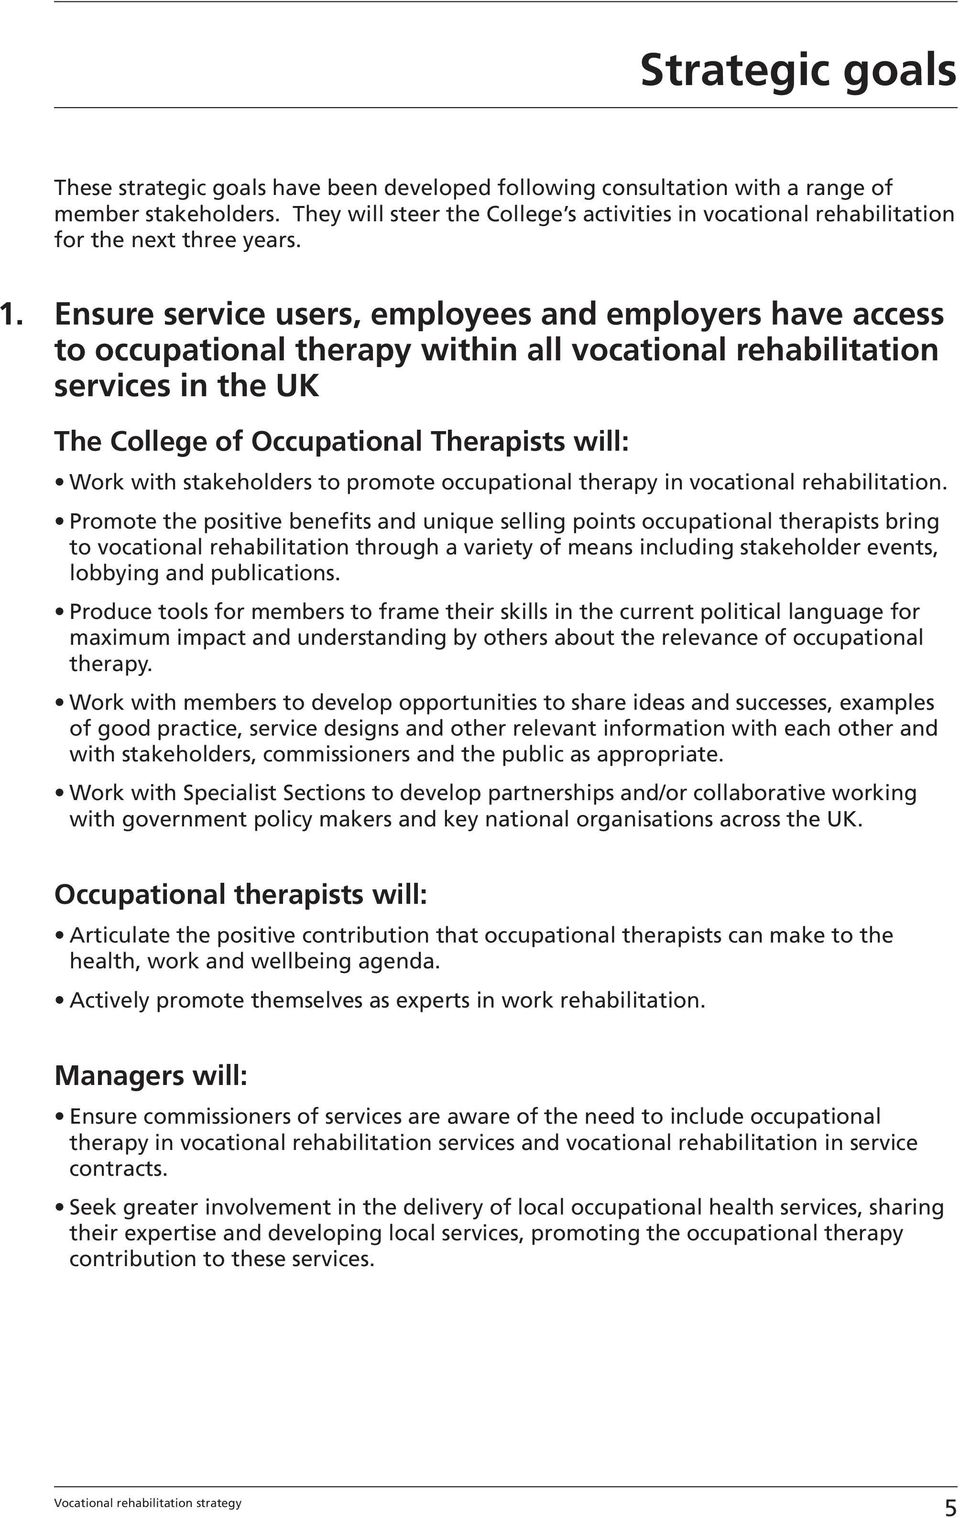 Ensure service users, employees and employers have access to occupational therapy within all vocational rehabilitation services in the UK The College of Occupational Therapists will: Work with